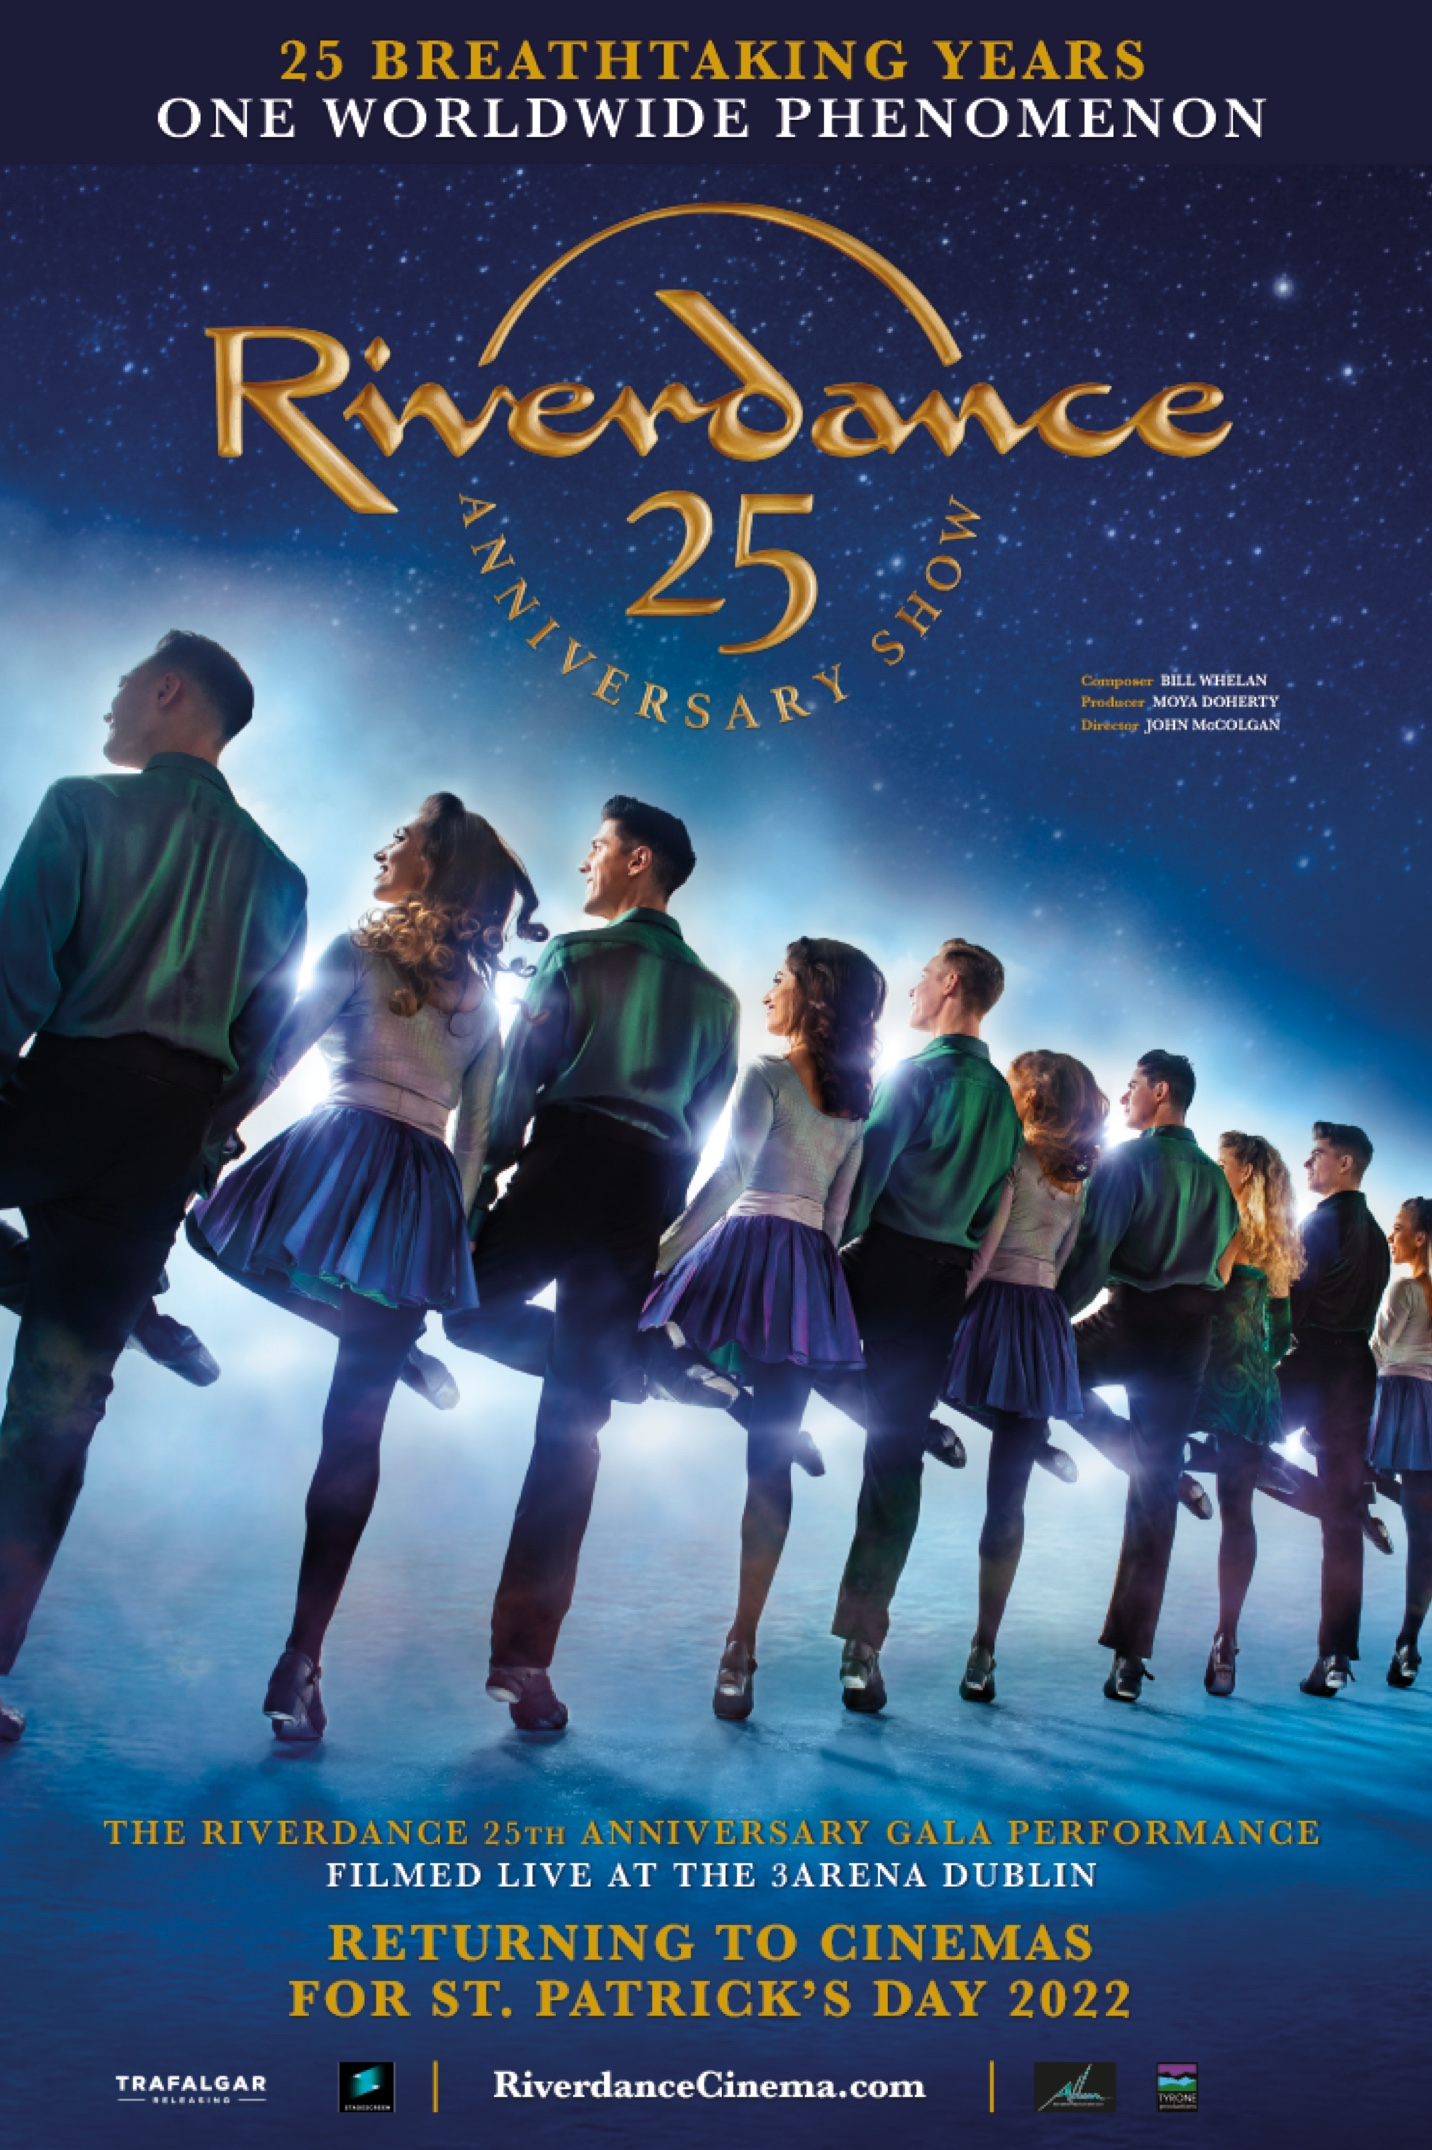 Poster image for Riverdance 25th Anniversary Show